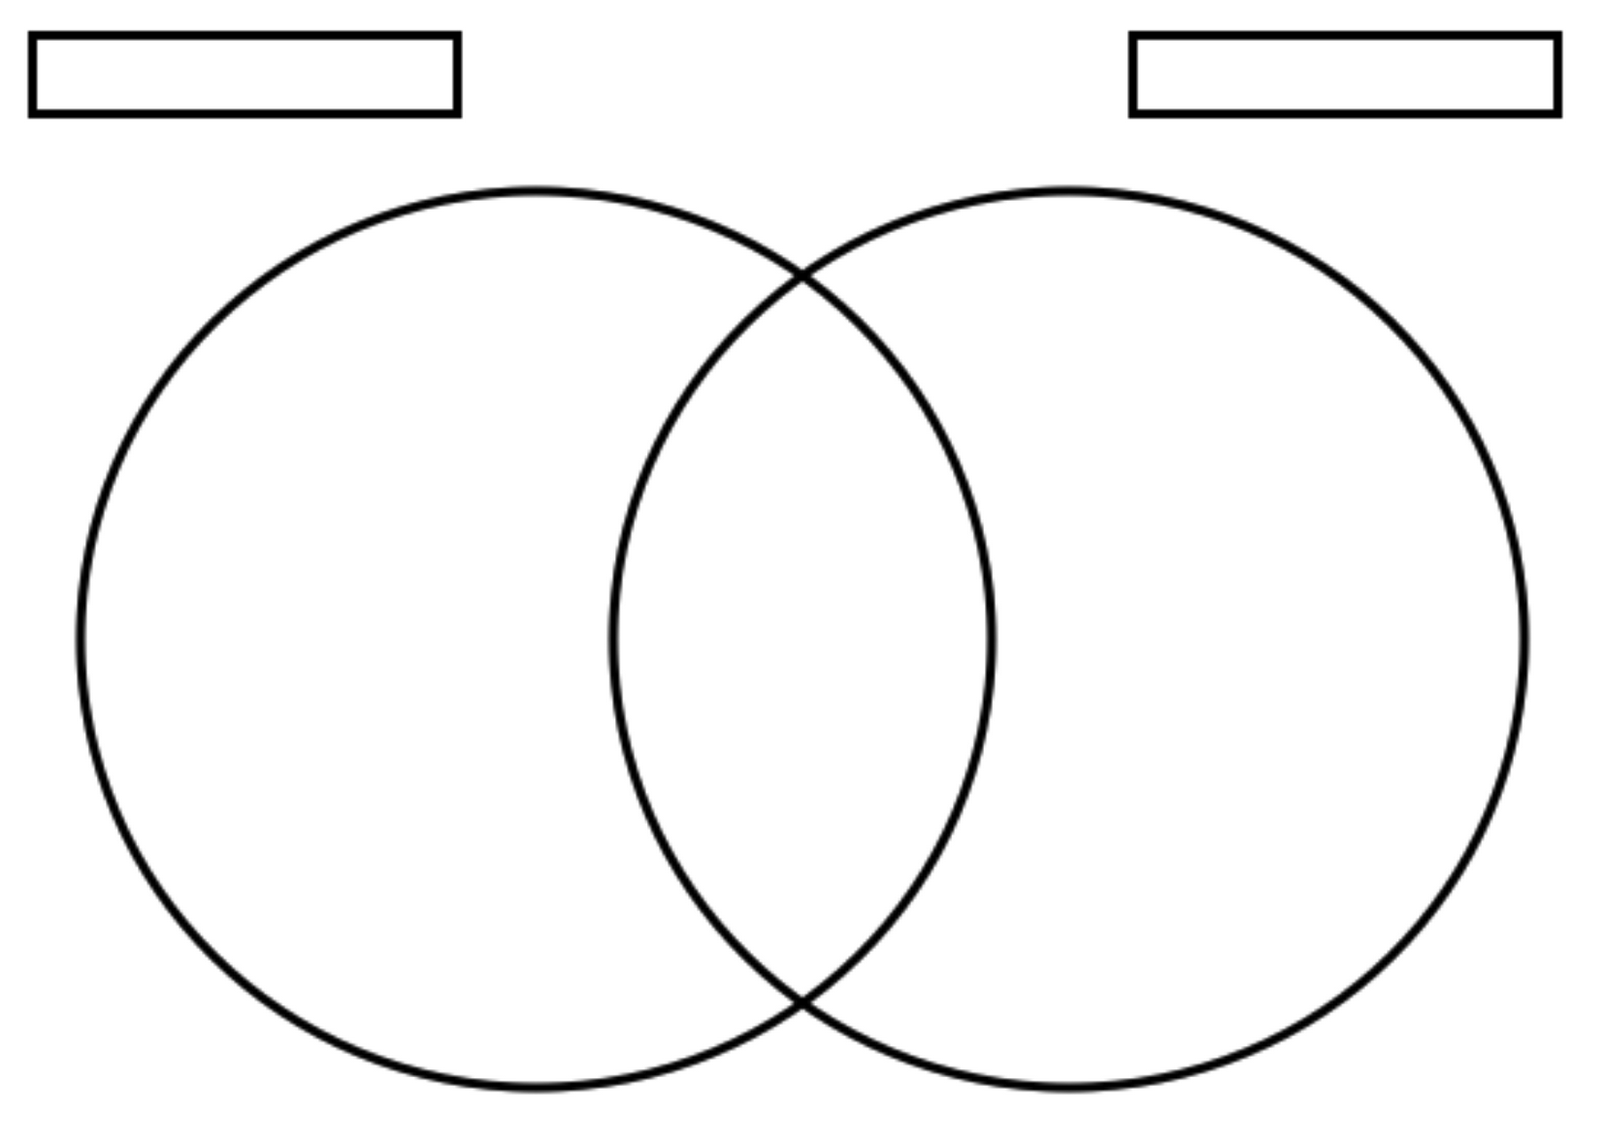 Diagram venn diagram template : Creating a Venn diagram template - Obfuscata